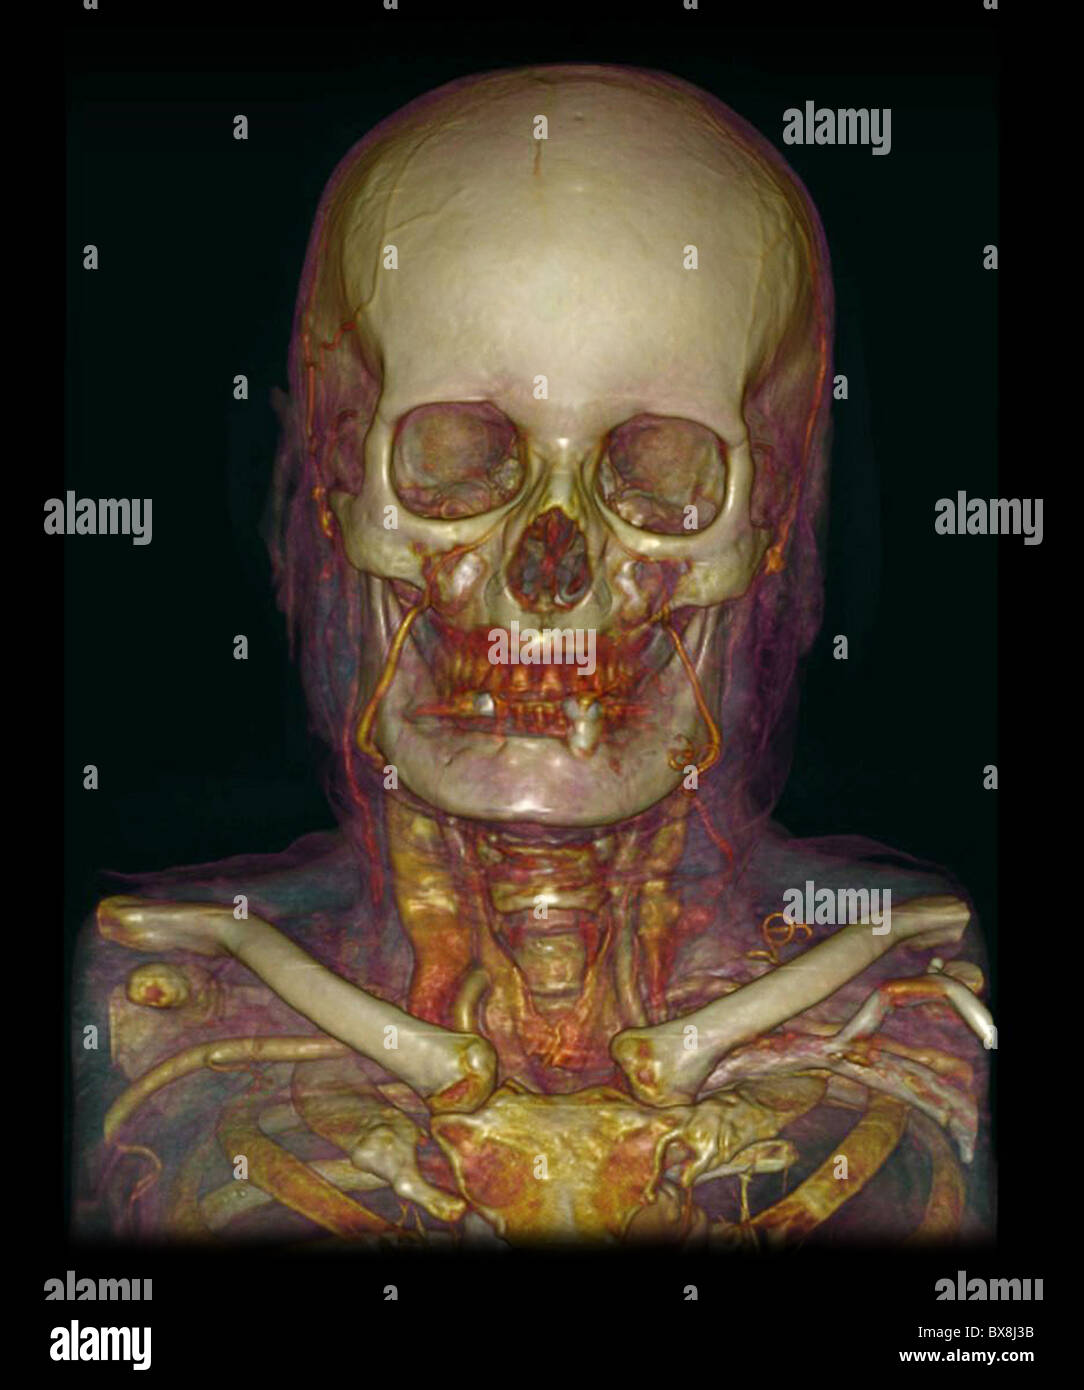 3d Ct Scan Head Stock Photos & 3d Ct Scan Head Stock Images - Alamy